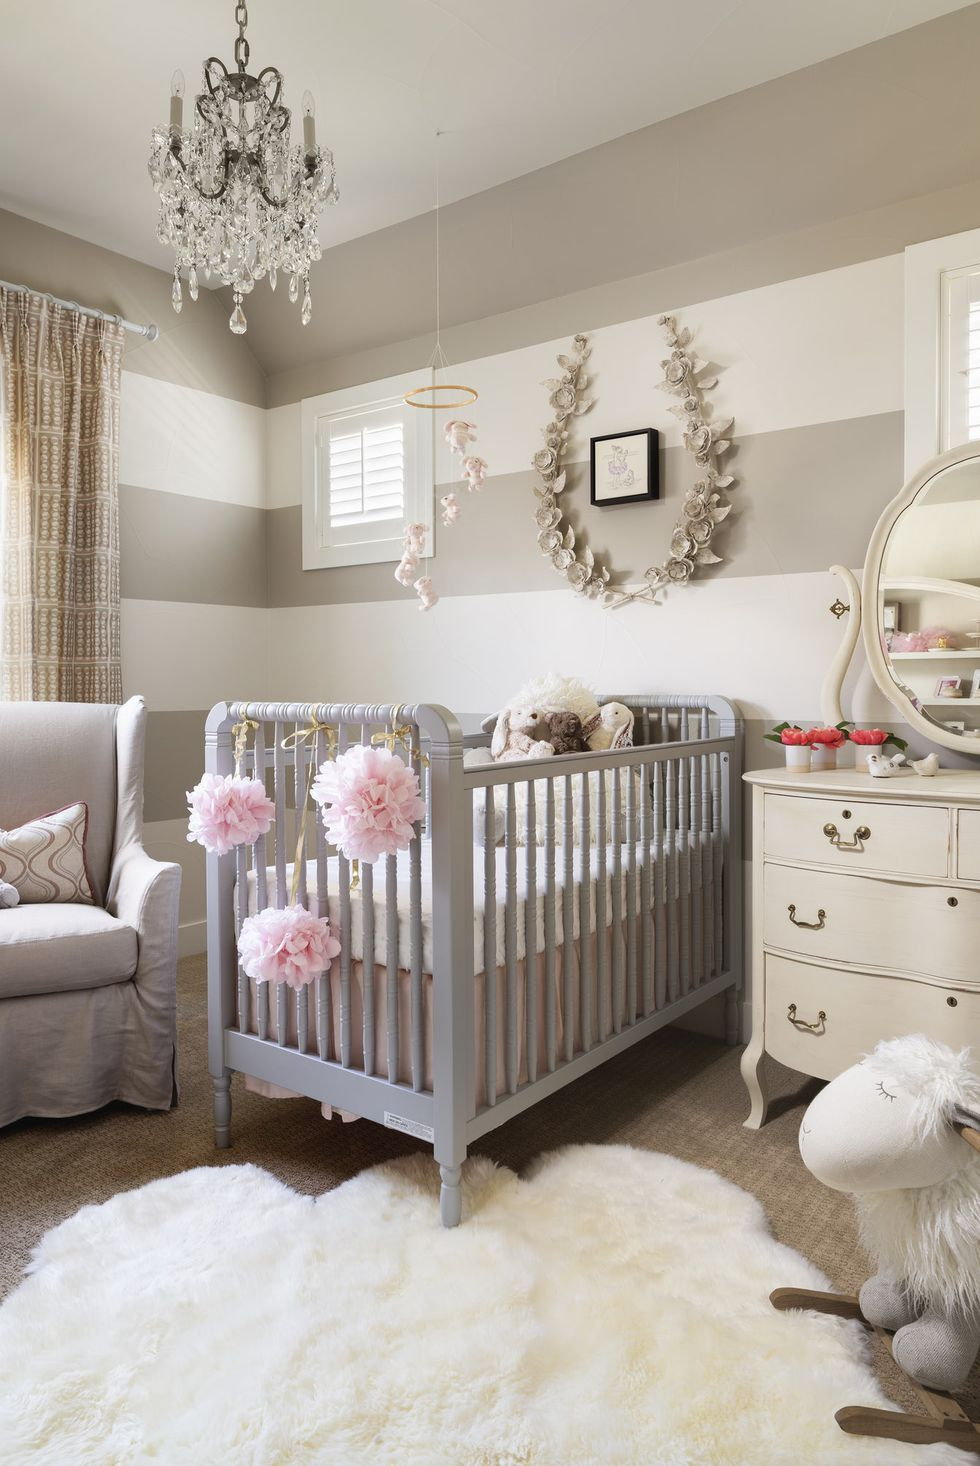 Baby Room Accessories: Stylish Baby Rooms Even Adults Would Adore